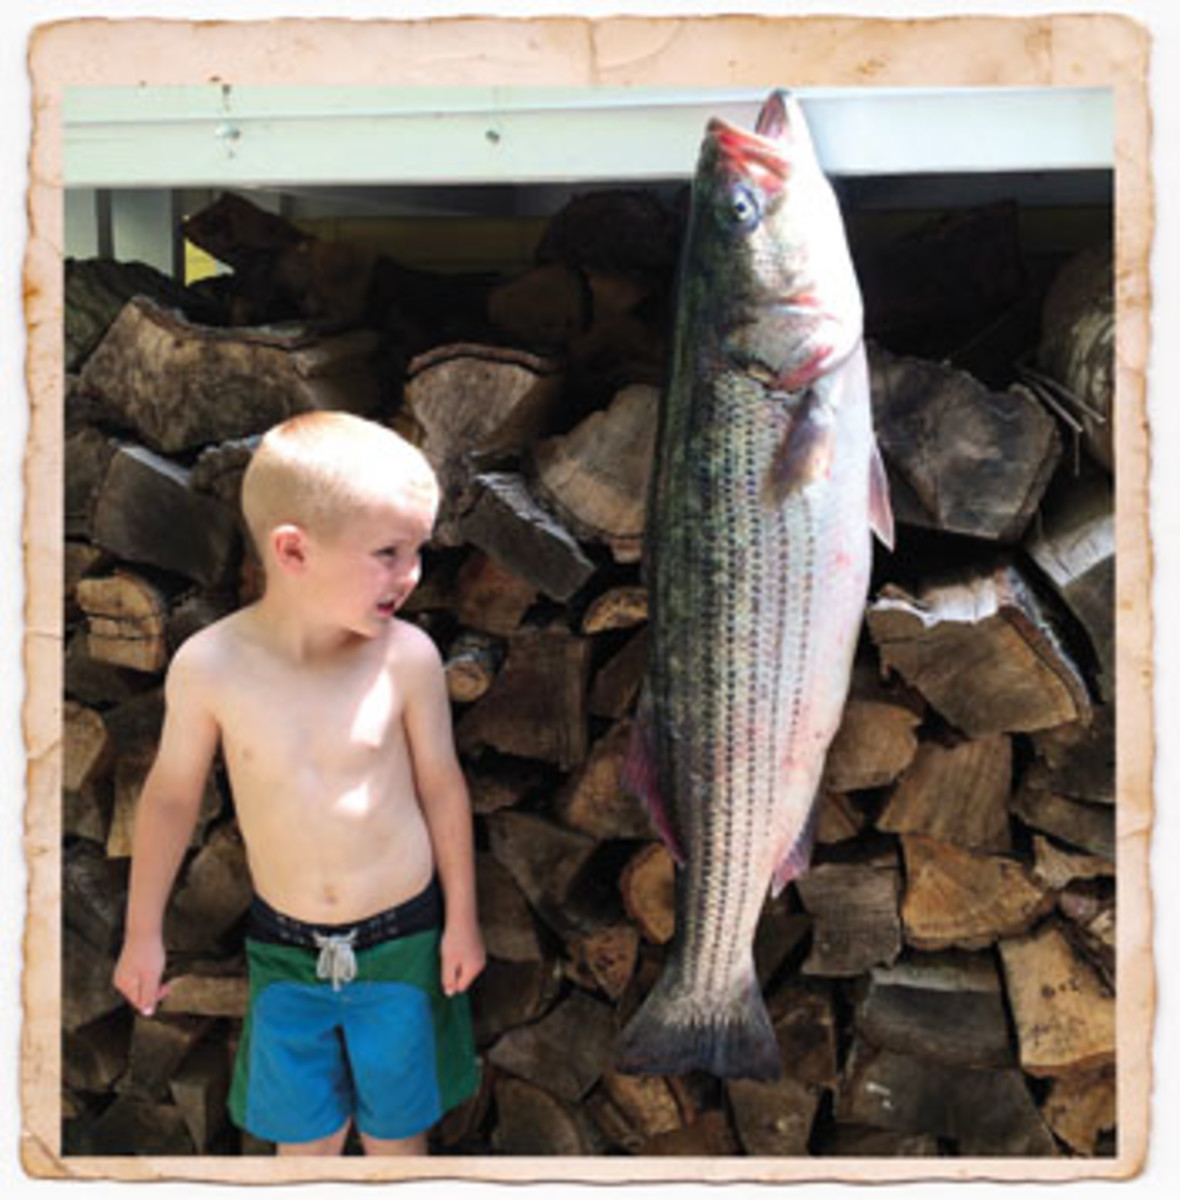 Joey Chivers sizes up a nice striped bass.